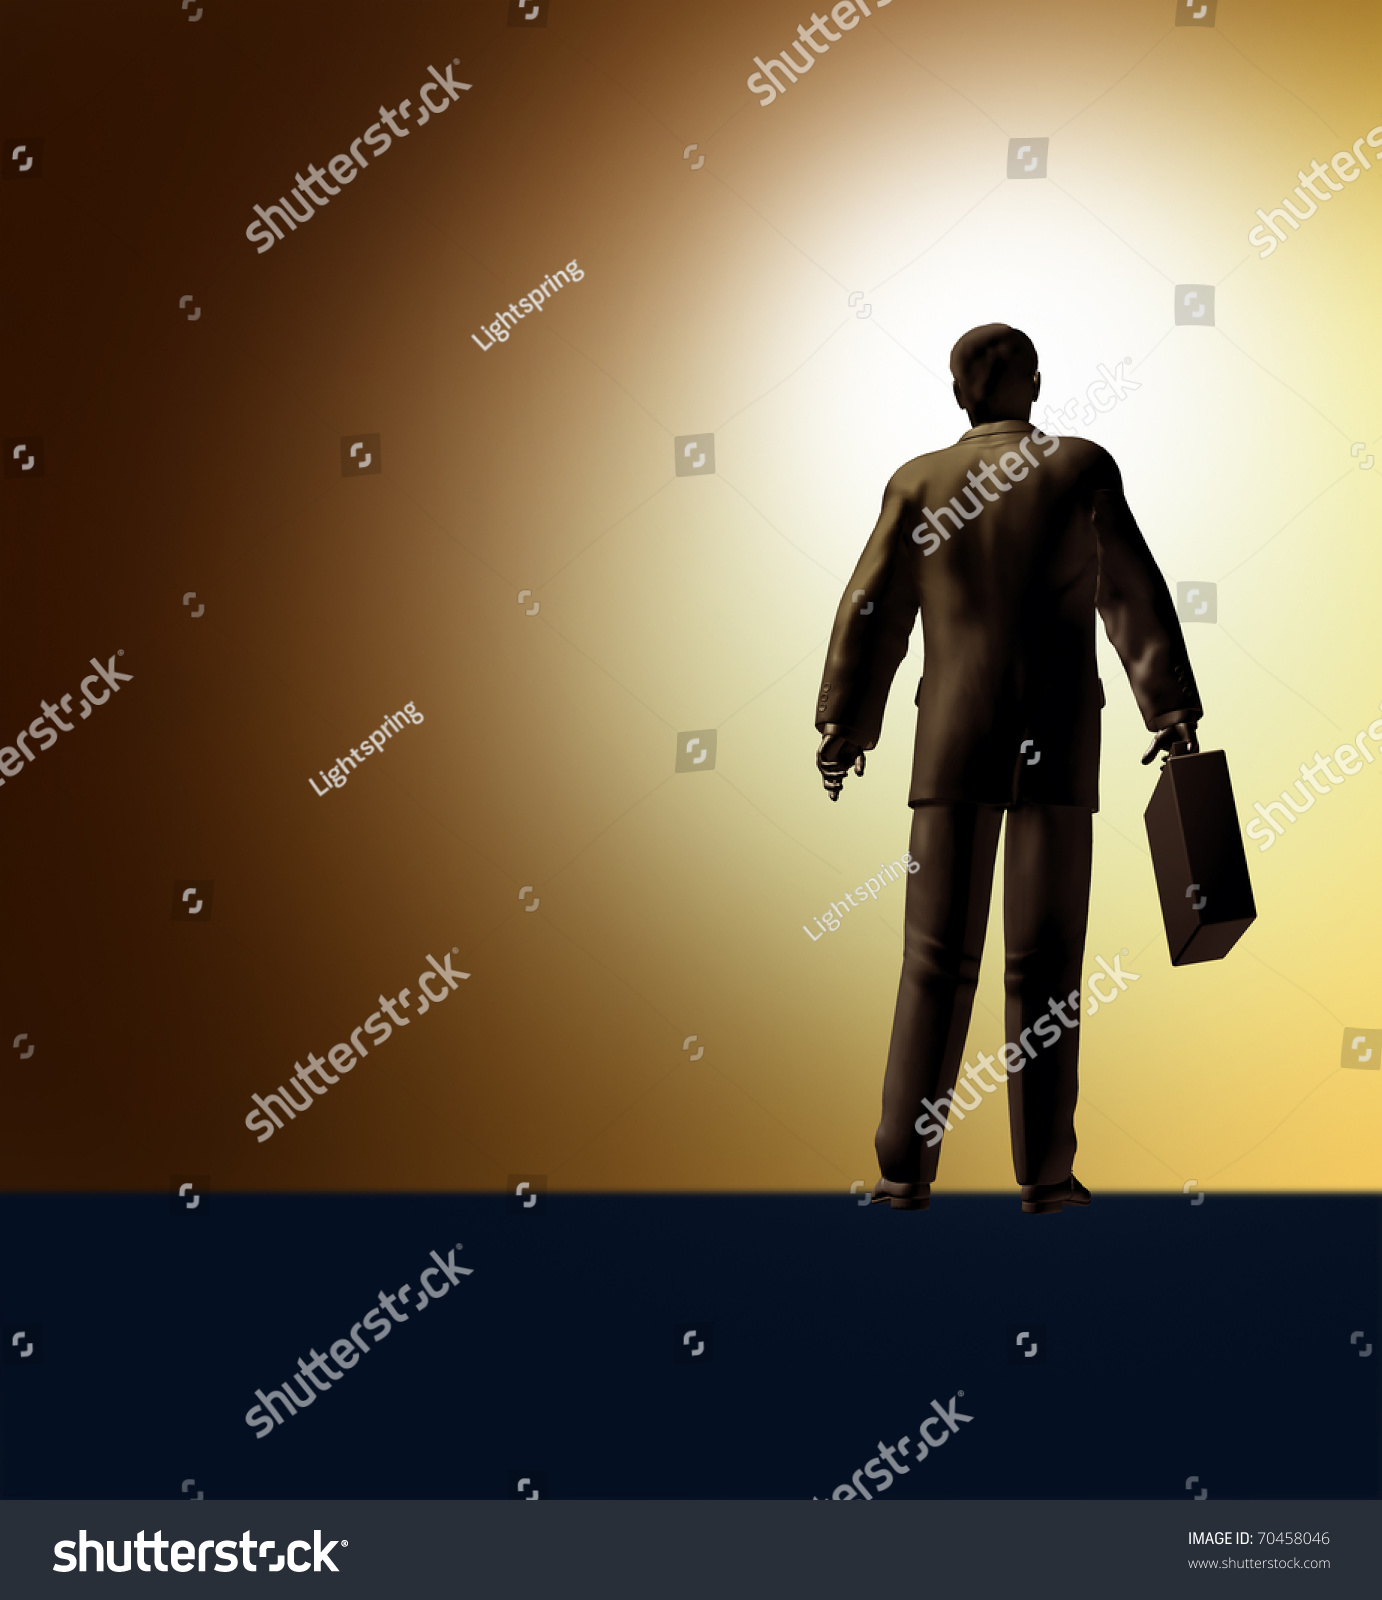 new career success start journey challenge conquer business man save to a lightbox